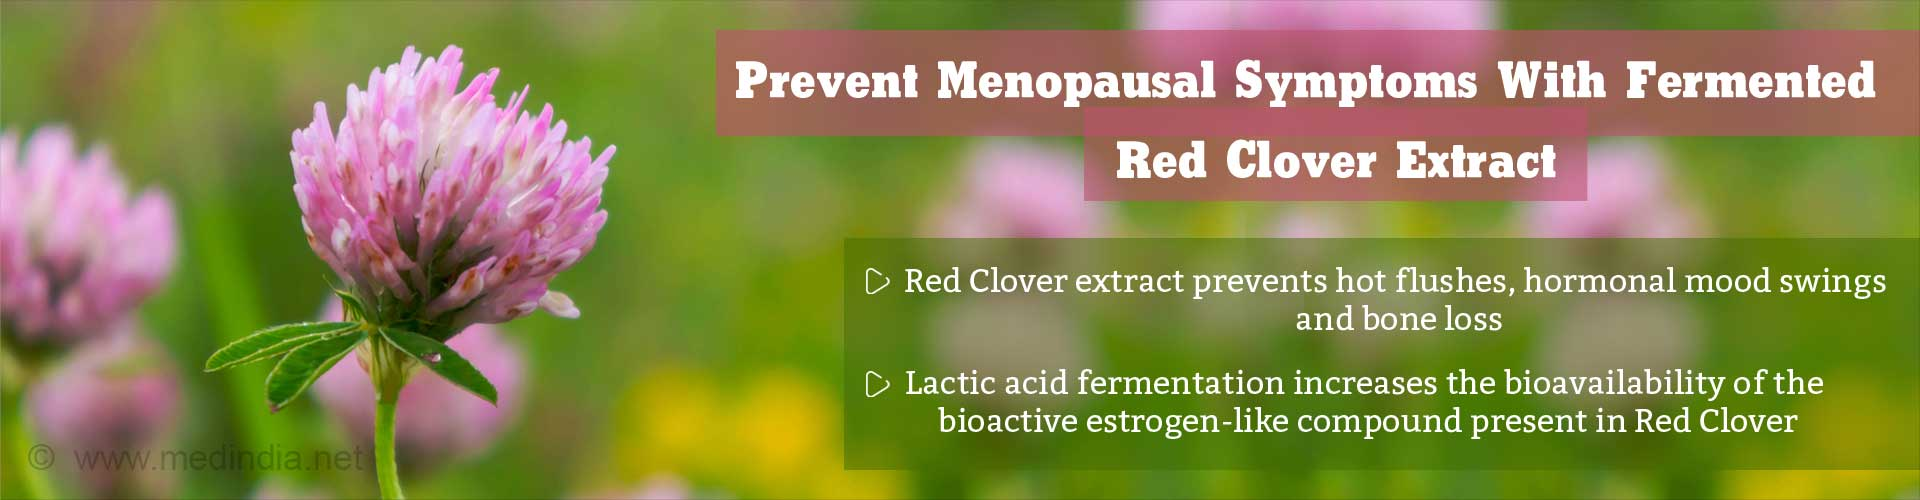 Try Fermented Red Clover Extract to Keep Menopausal Symptoms At Bay